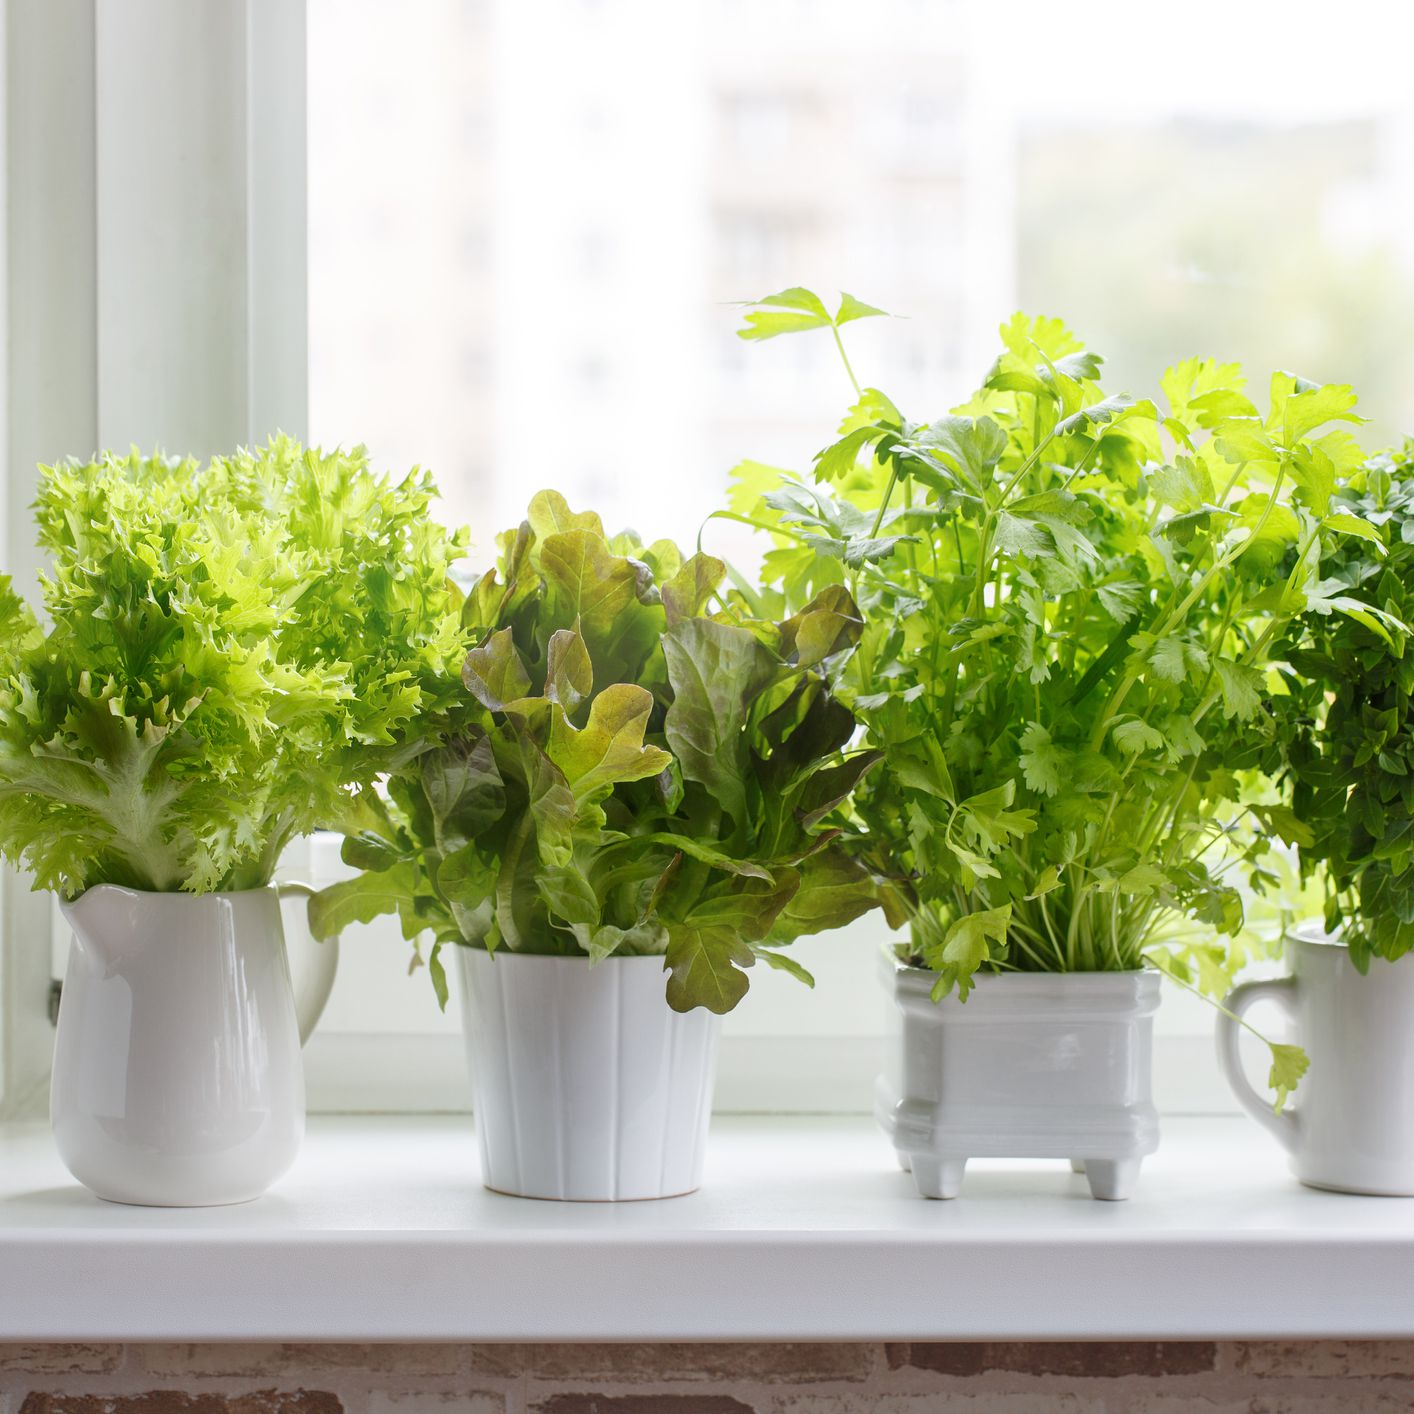 How to Grow Your Own Lettuce Indoors